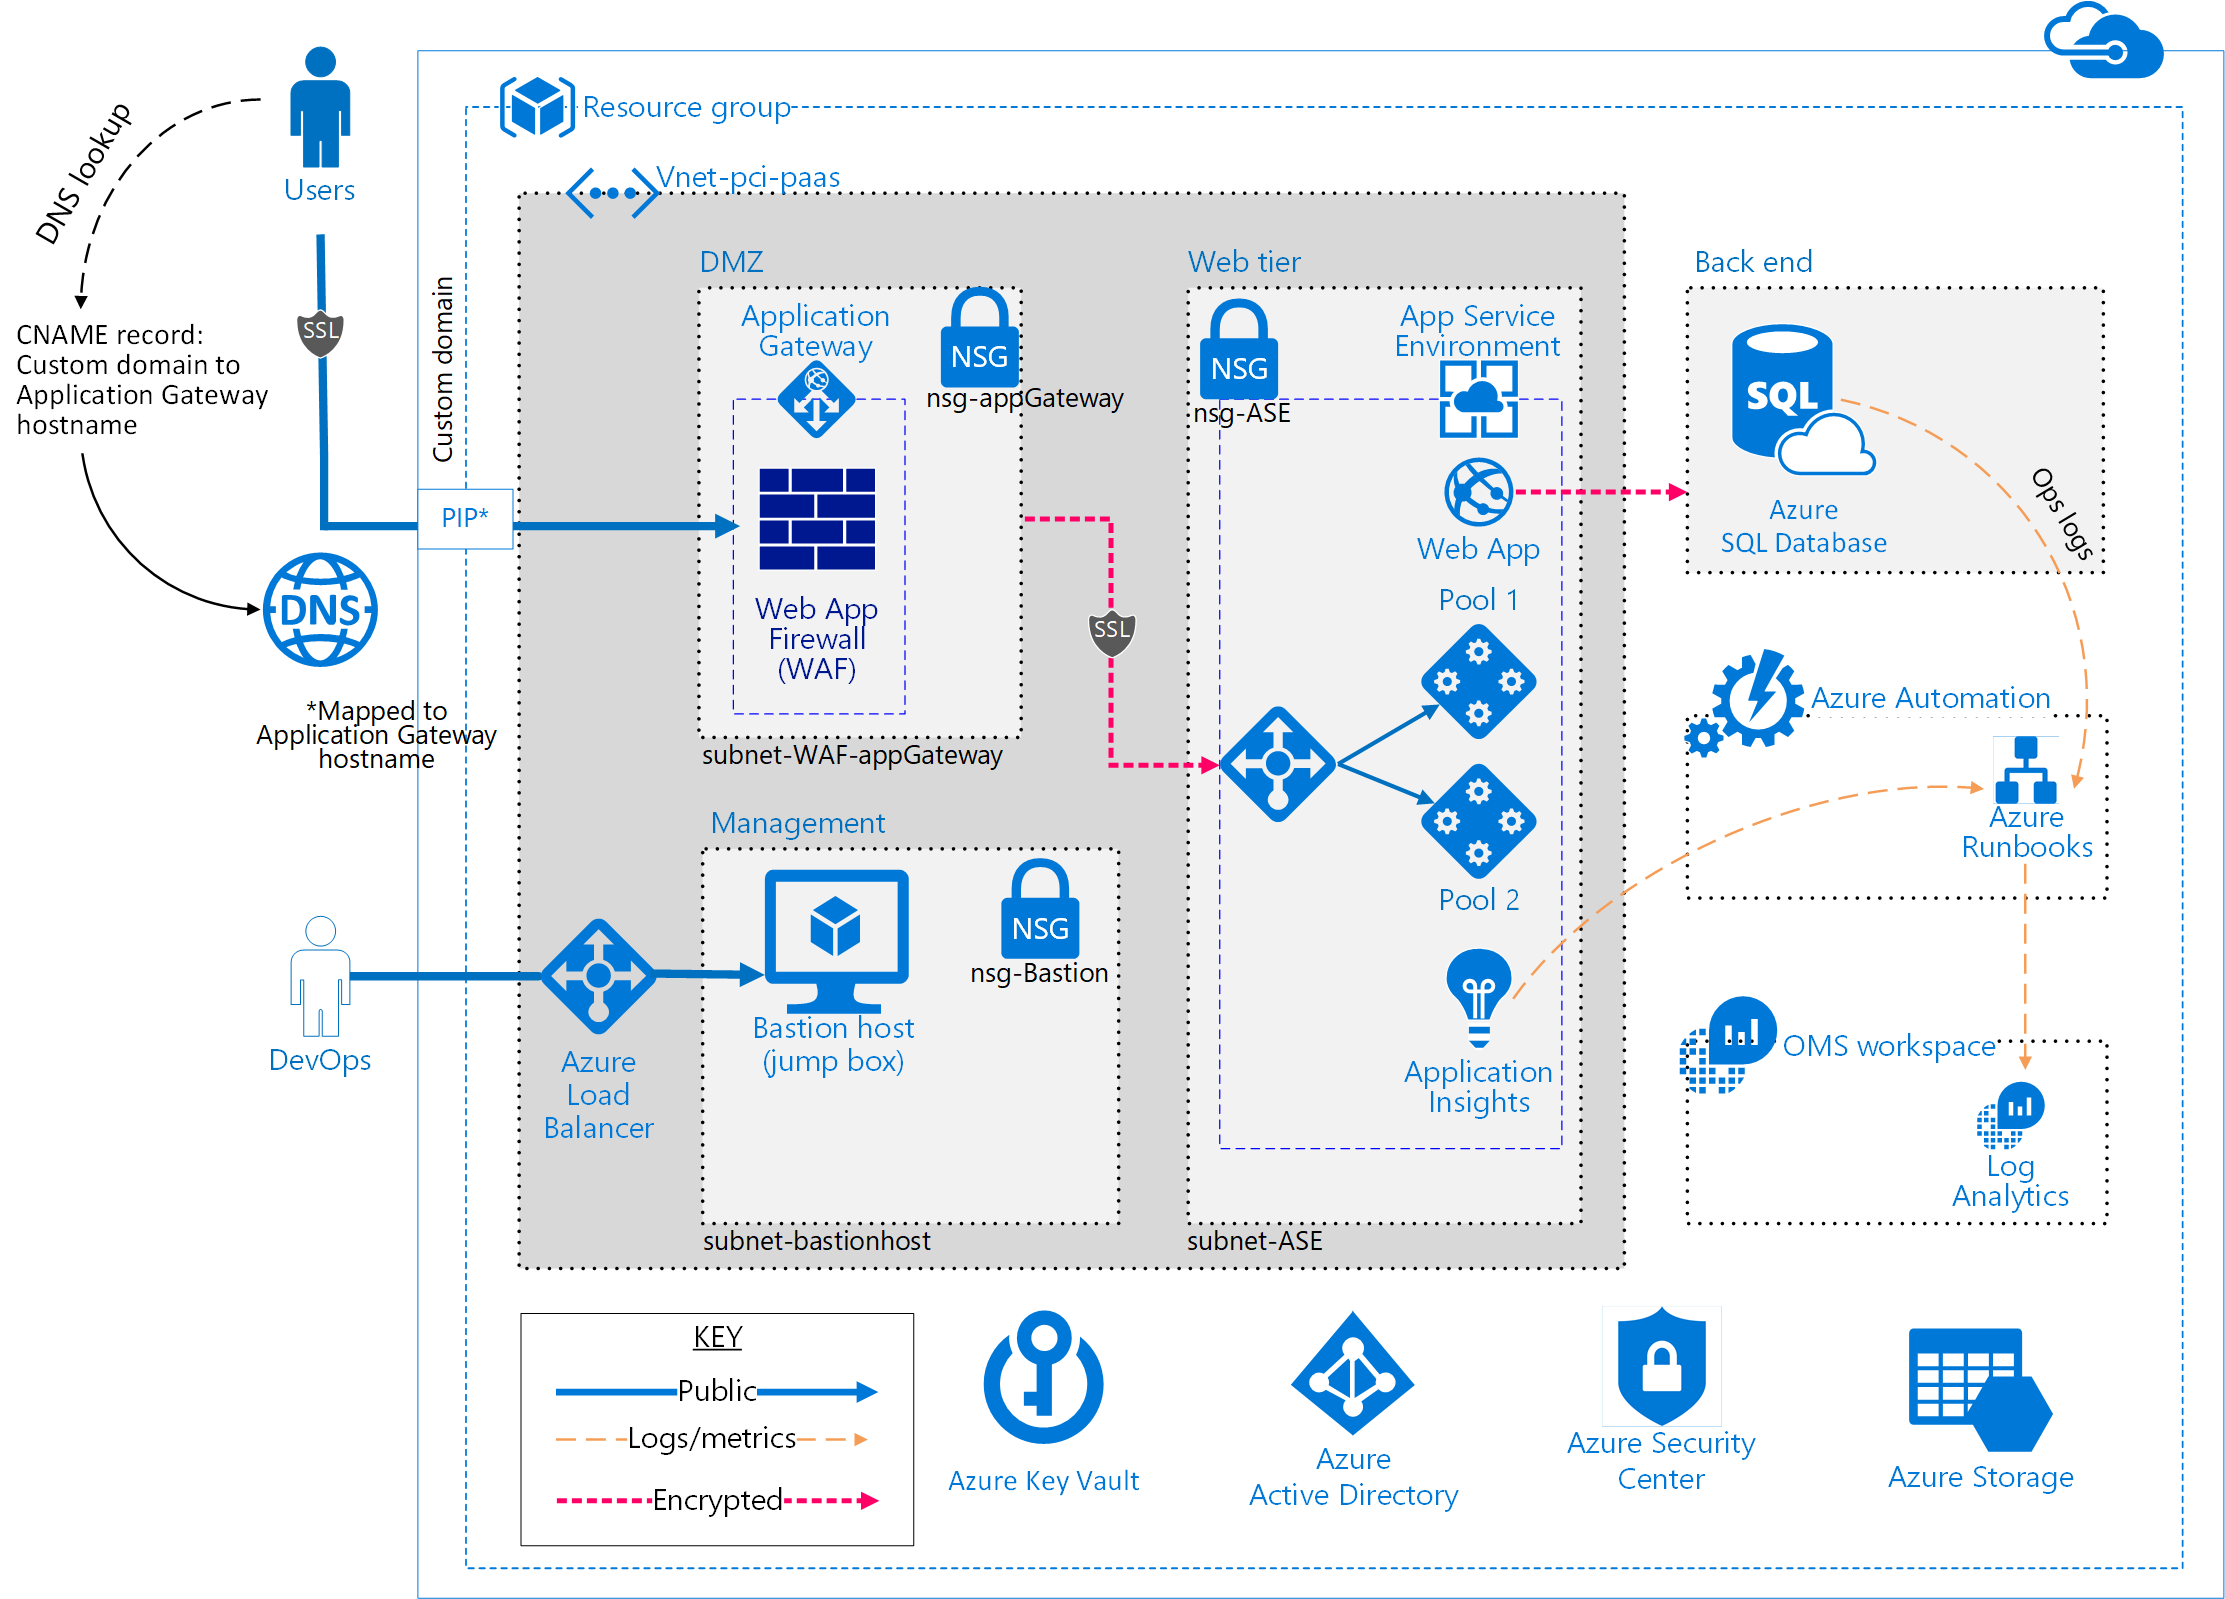 Azure security and compliance blueprint ffiec financial services architectural diagram malvernweather Image collections